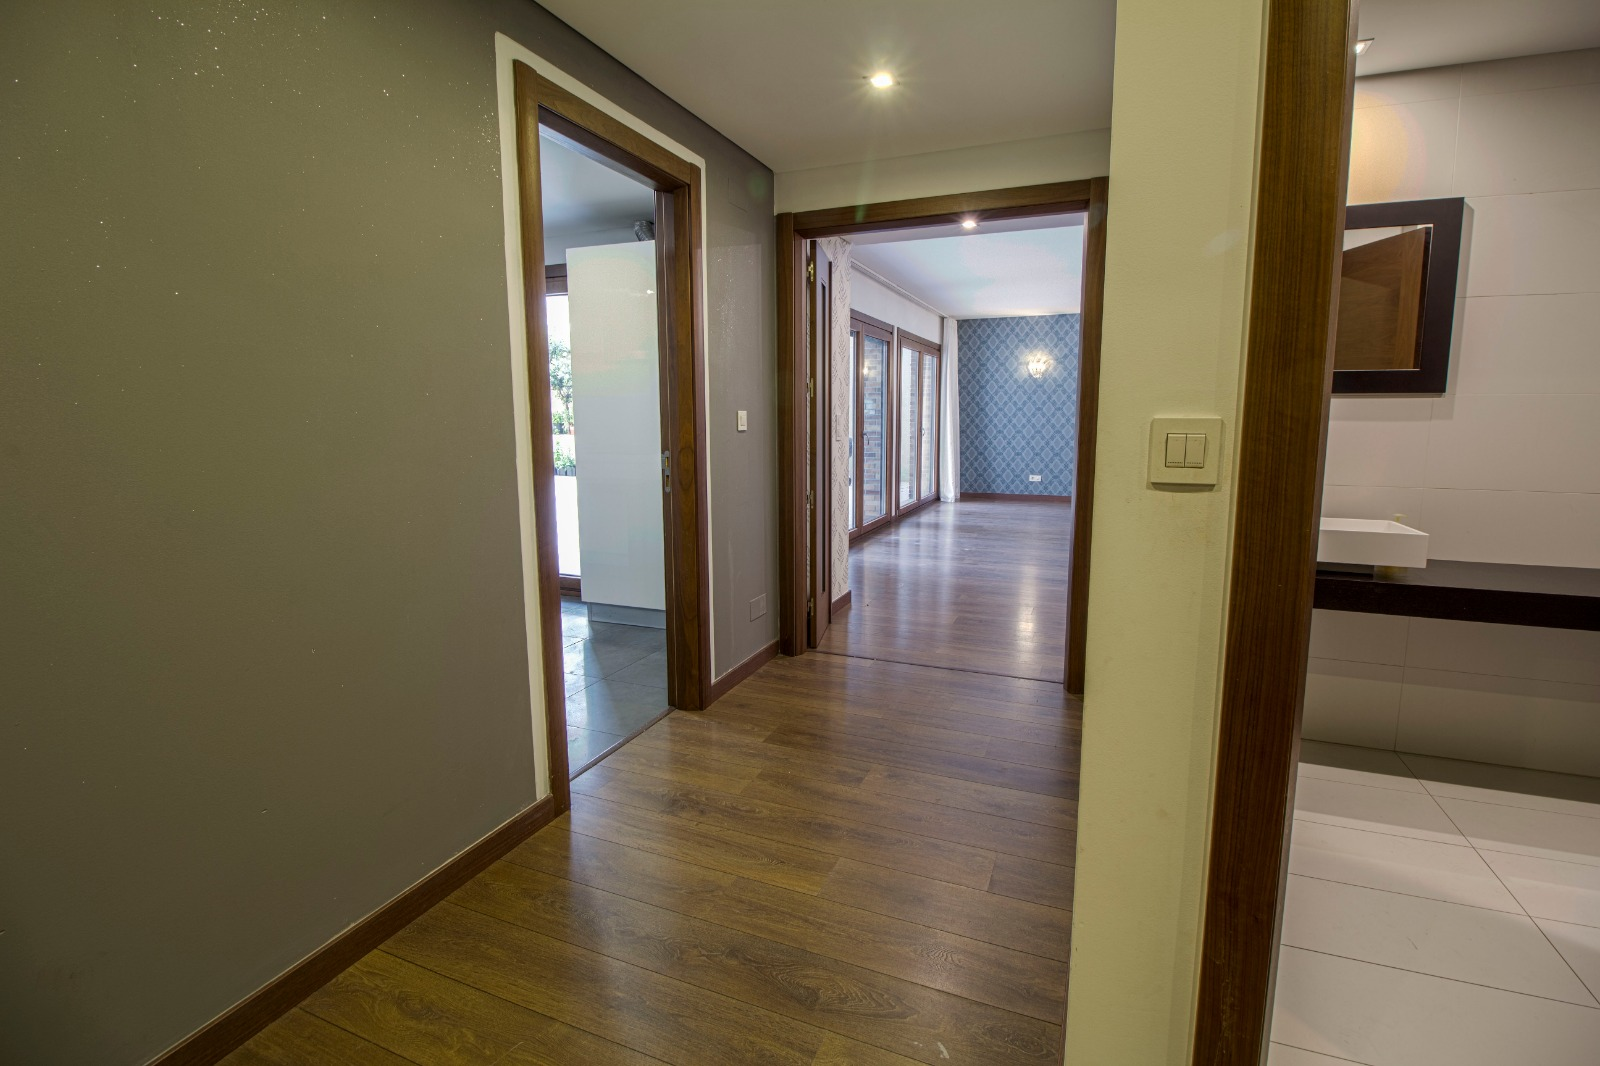 3 bedroom apartment with patio